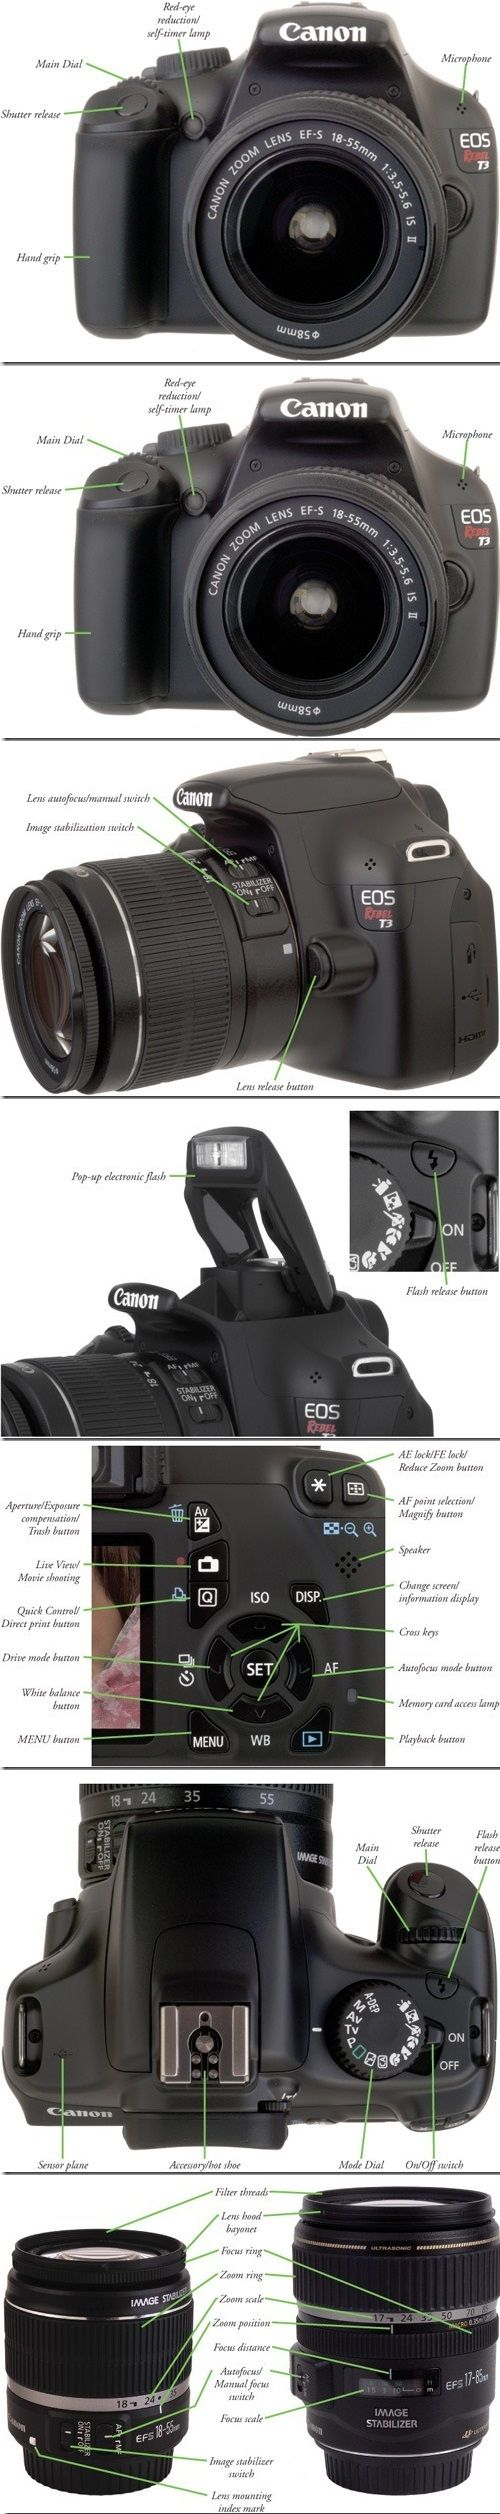 how to use canon rebel